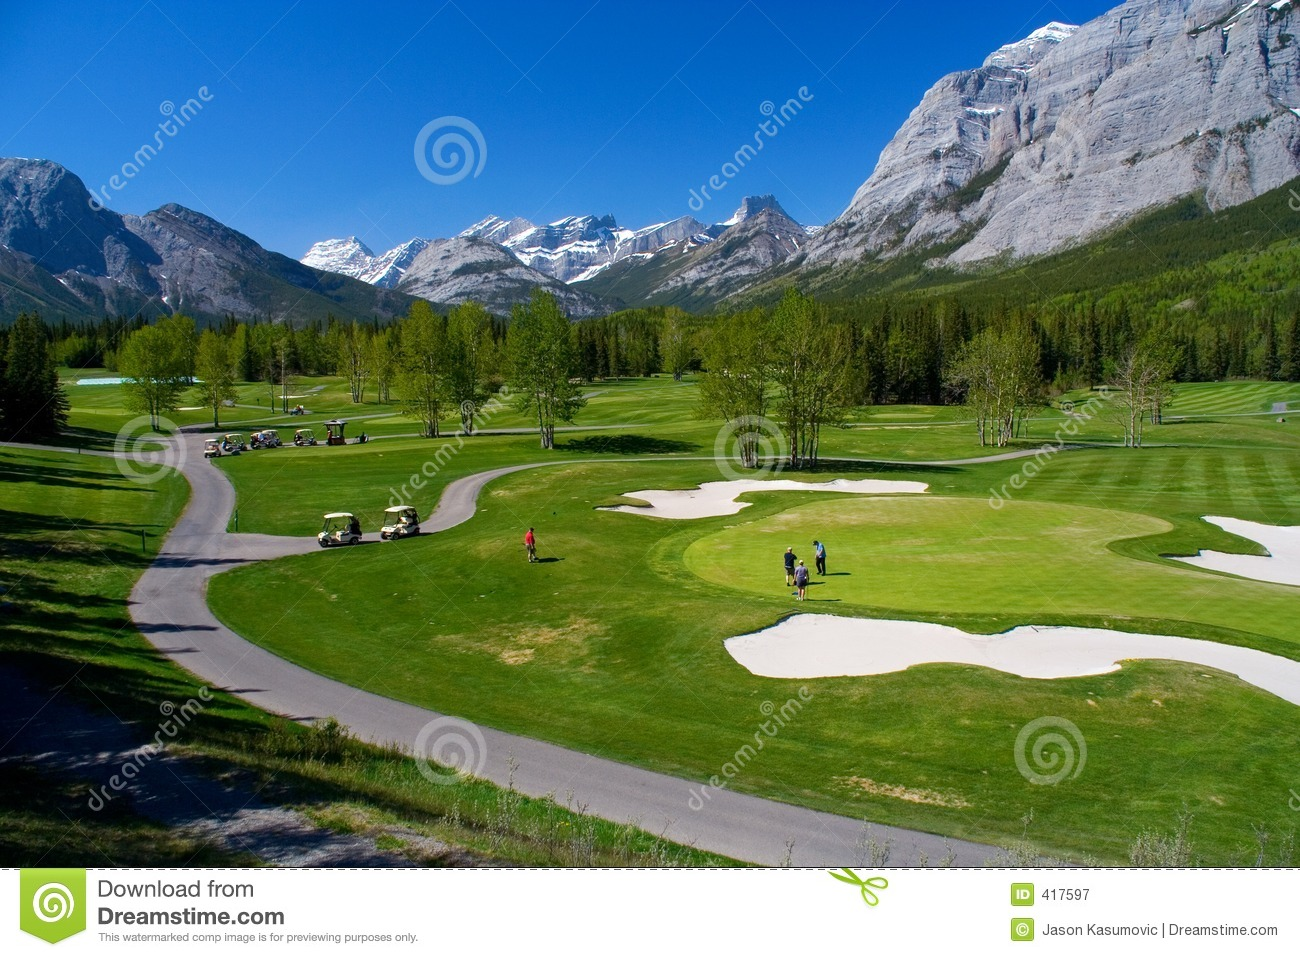 Pretty Girl Wallpaper Download Kananaskis Golf Course Stock Image Image Of Links Scenic